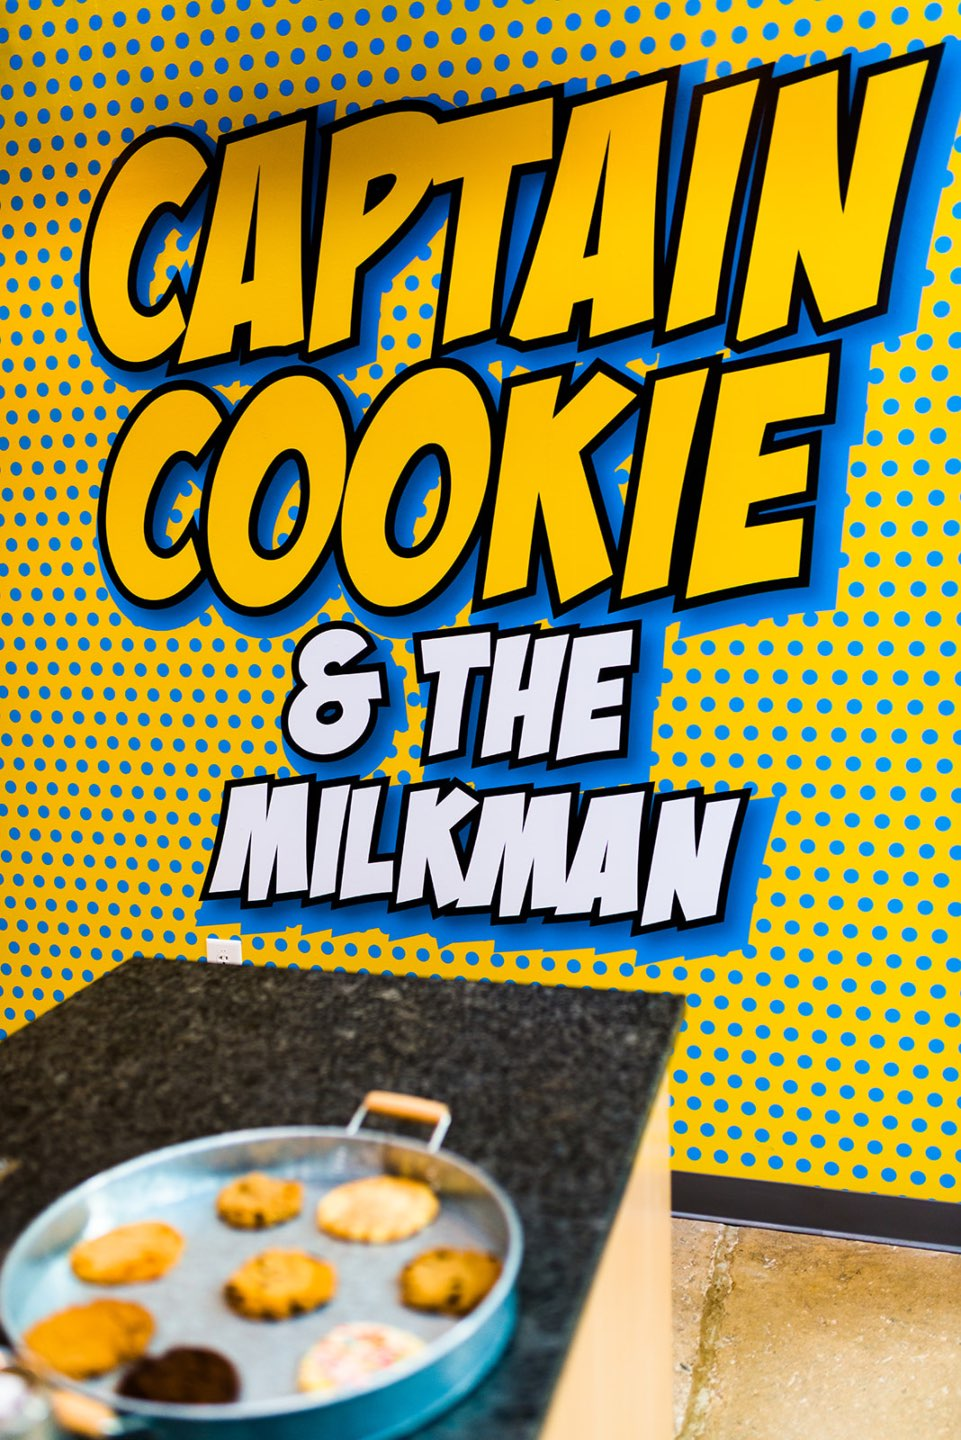 Raleigh Favorite: Transfer Co. Food Hall - I'm Fixin' To - @mbg0112 | Captain Cookie and the Milkman review featured by top Raleigh blogger, I'm Fixin' To